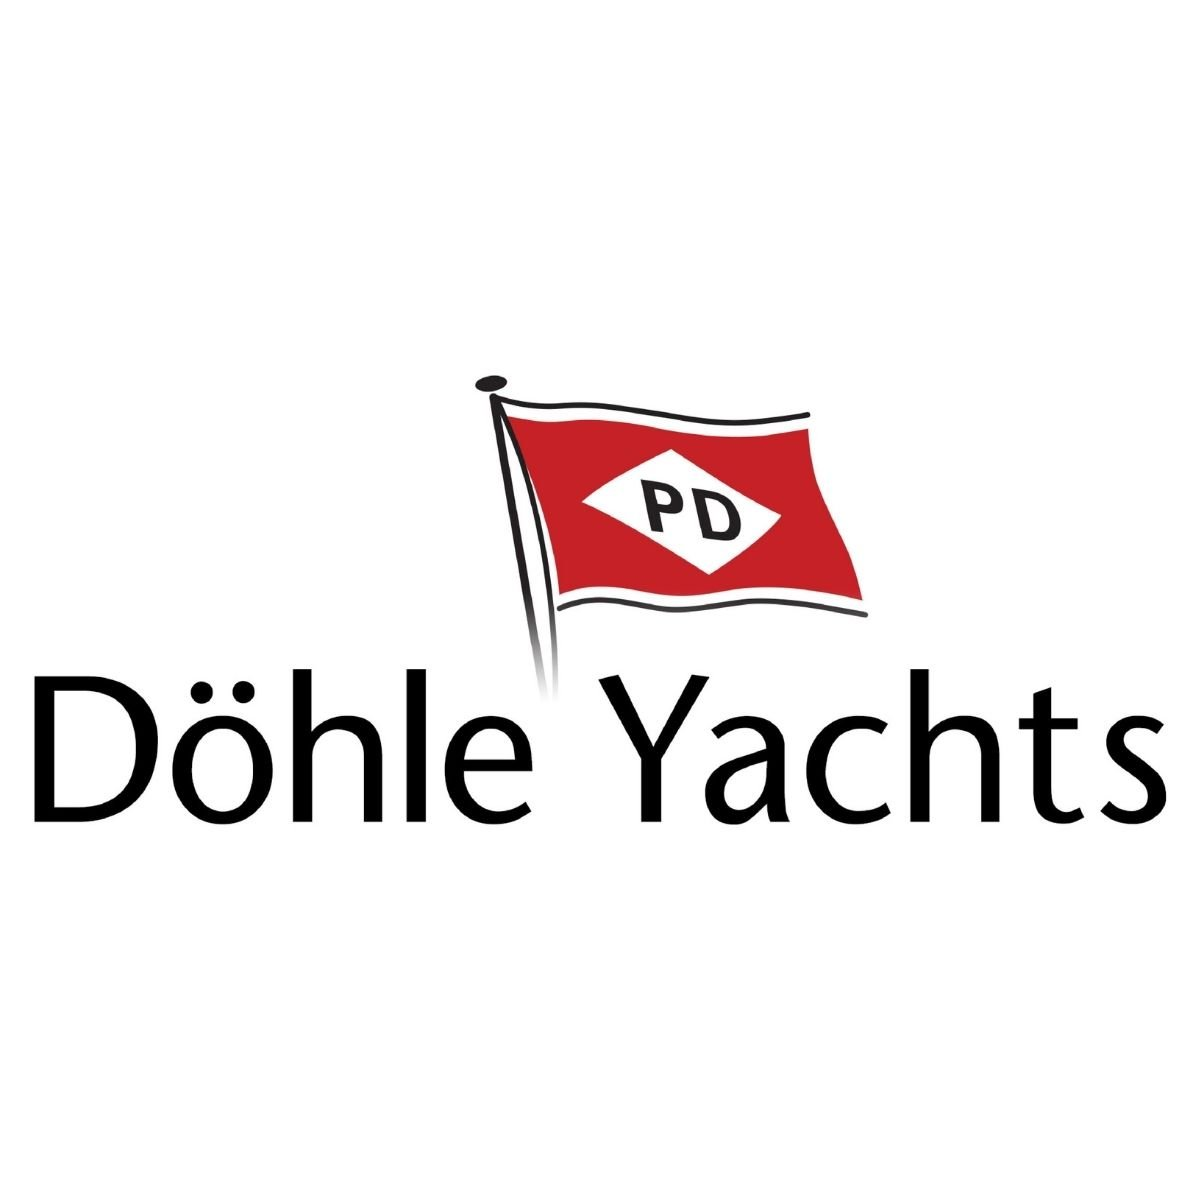 Dohle yachts